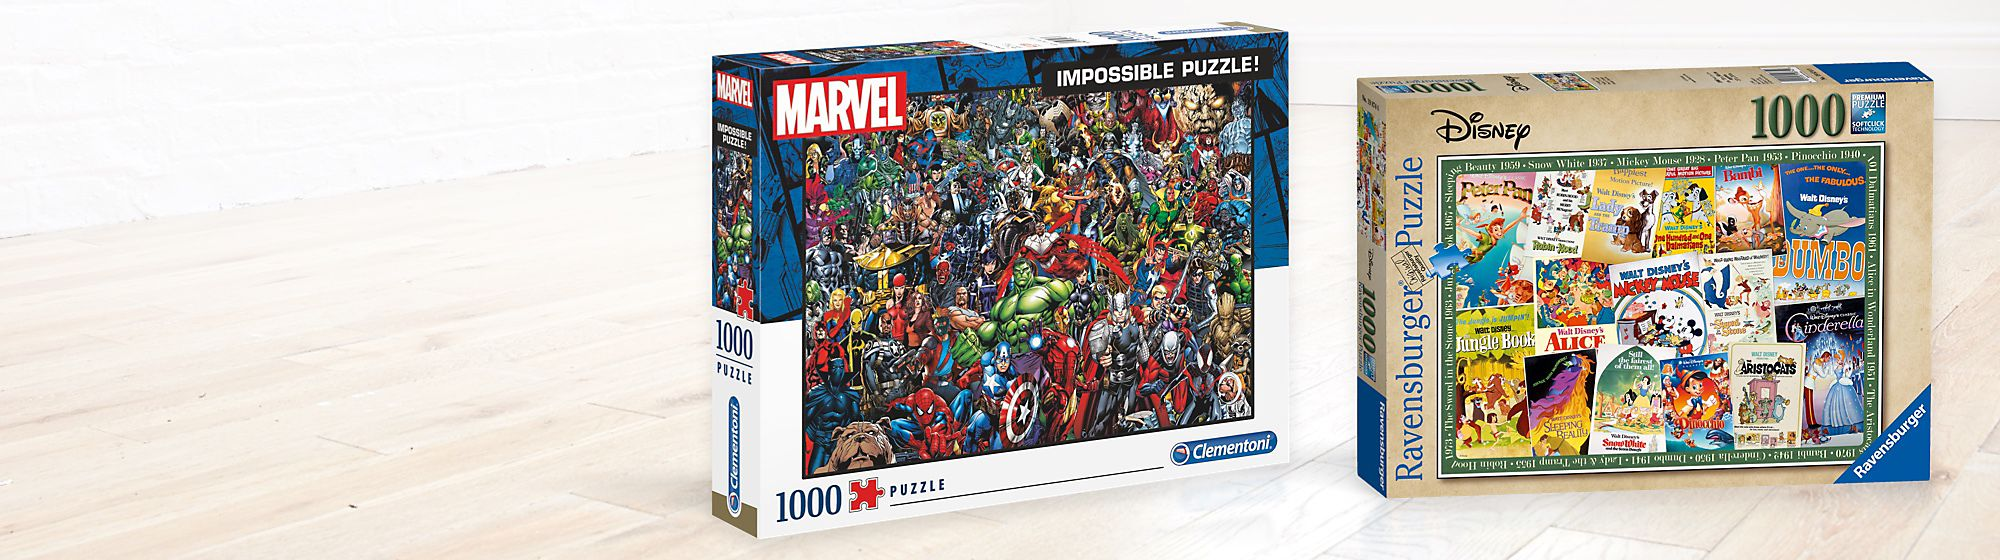 Games & Puzzles Loads of laughter and fun await your next family game night with our board games, puzzles & more